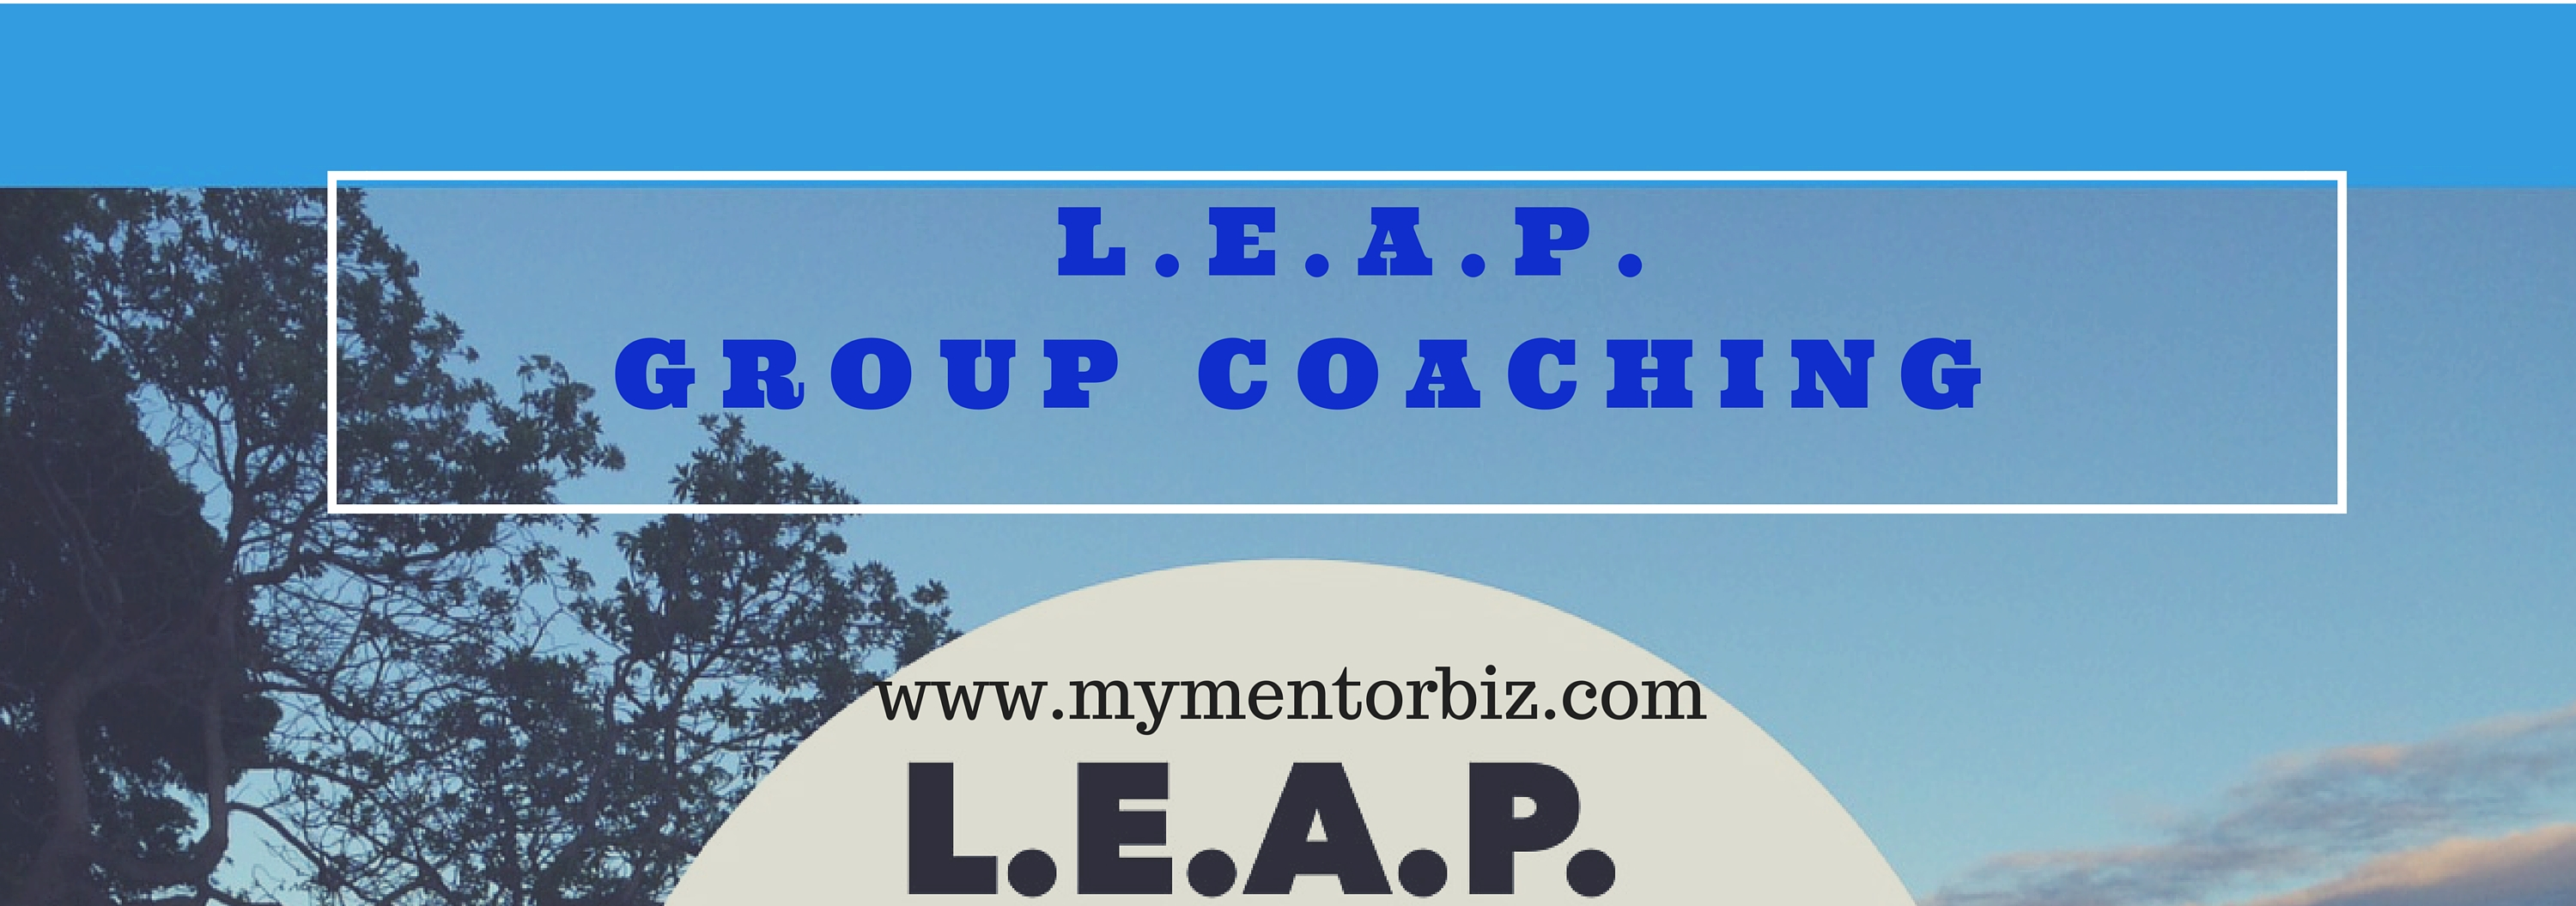 leap sales page header